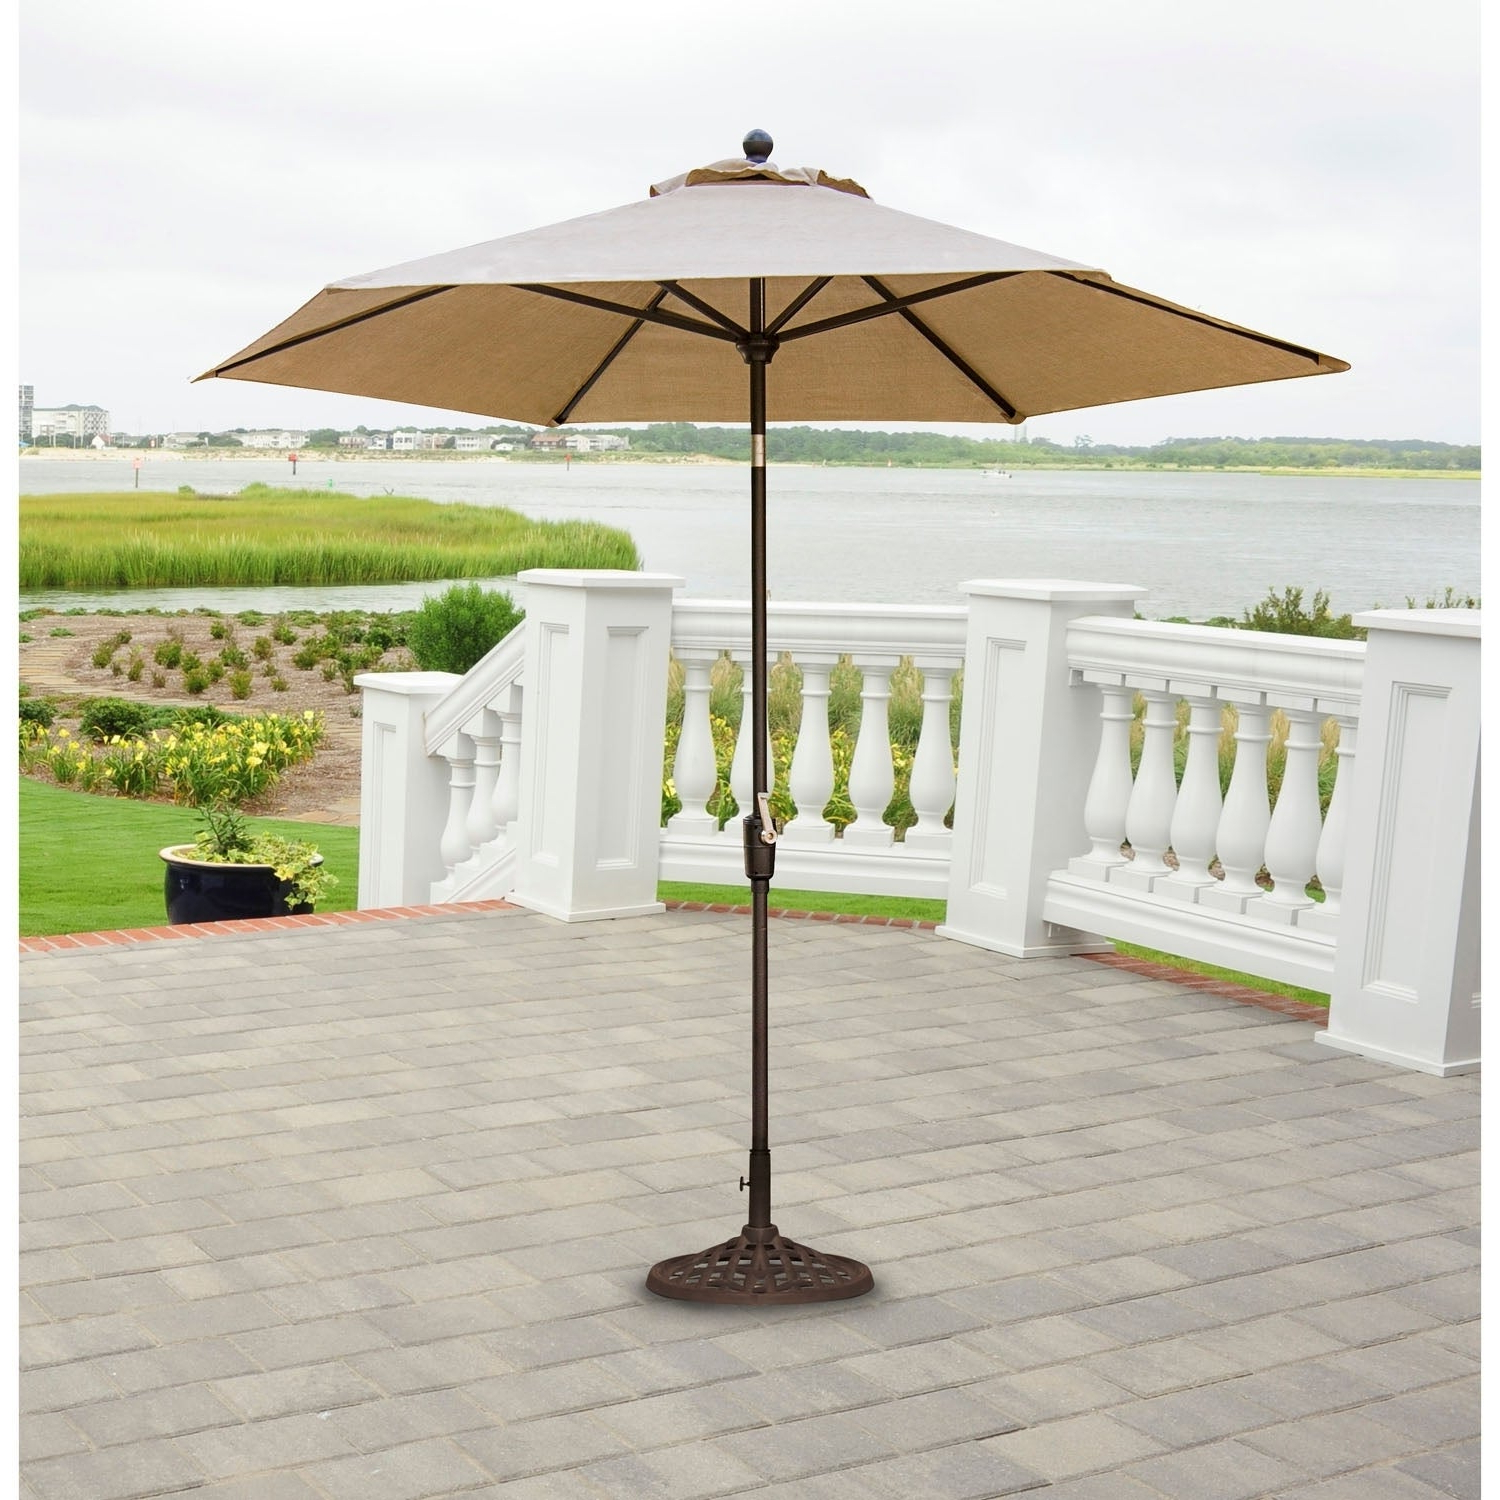 2020 Hanover Outdoor Tradumb 11 Traditions 11 Foot Market Umbrella Inside Julian Market Sunbrella Umbrellas (Gallery 11 of 20)